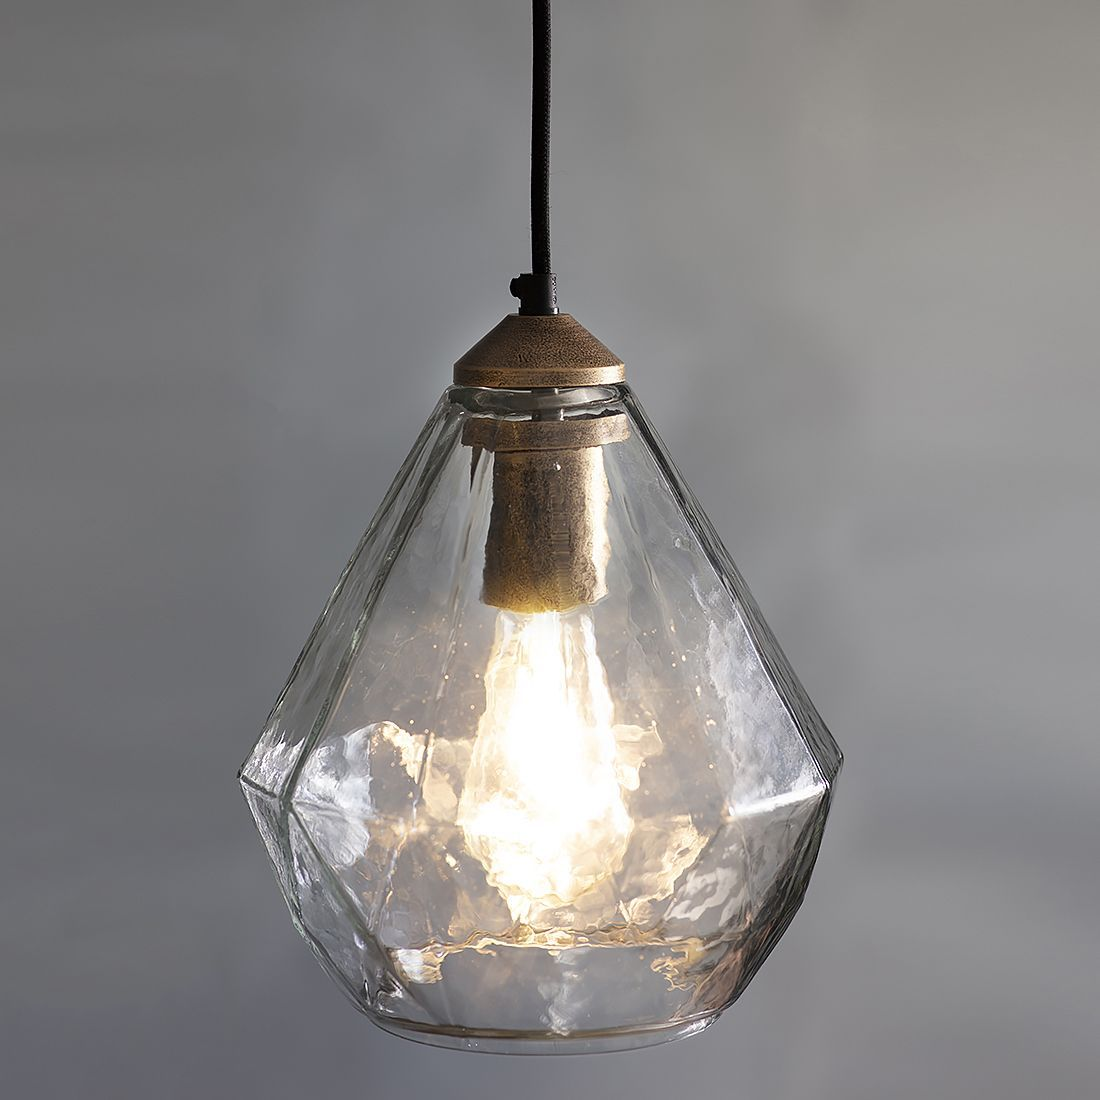 Sophia Glass Pendant Light – pickndecor.com/design